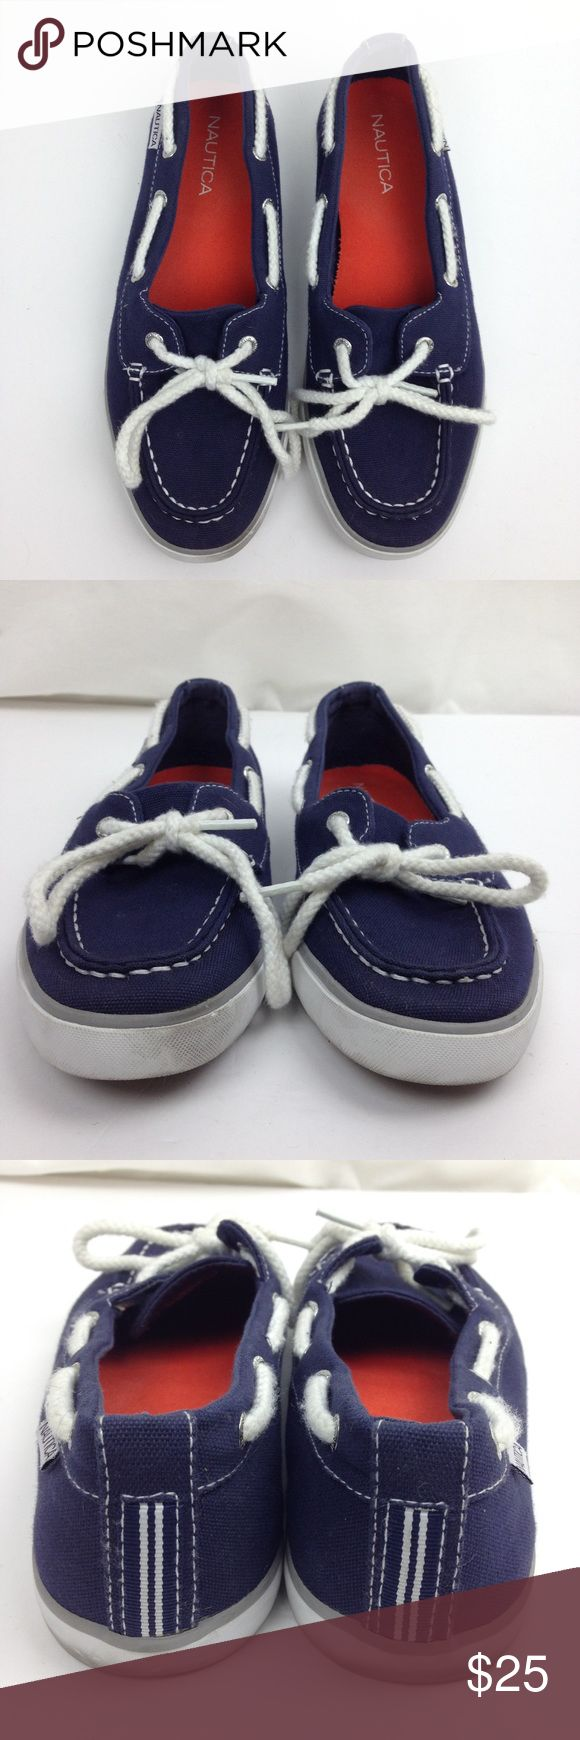 Nautica blue boat shoes size 6.5 Slip on Nautica blue boat shoes size 6.5 Slip on White laces Nautica Shoes Flats & Loafers